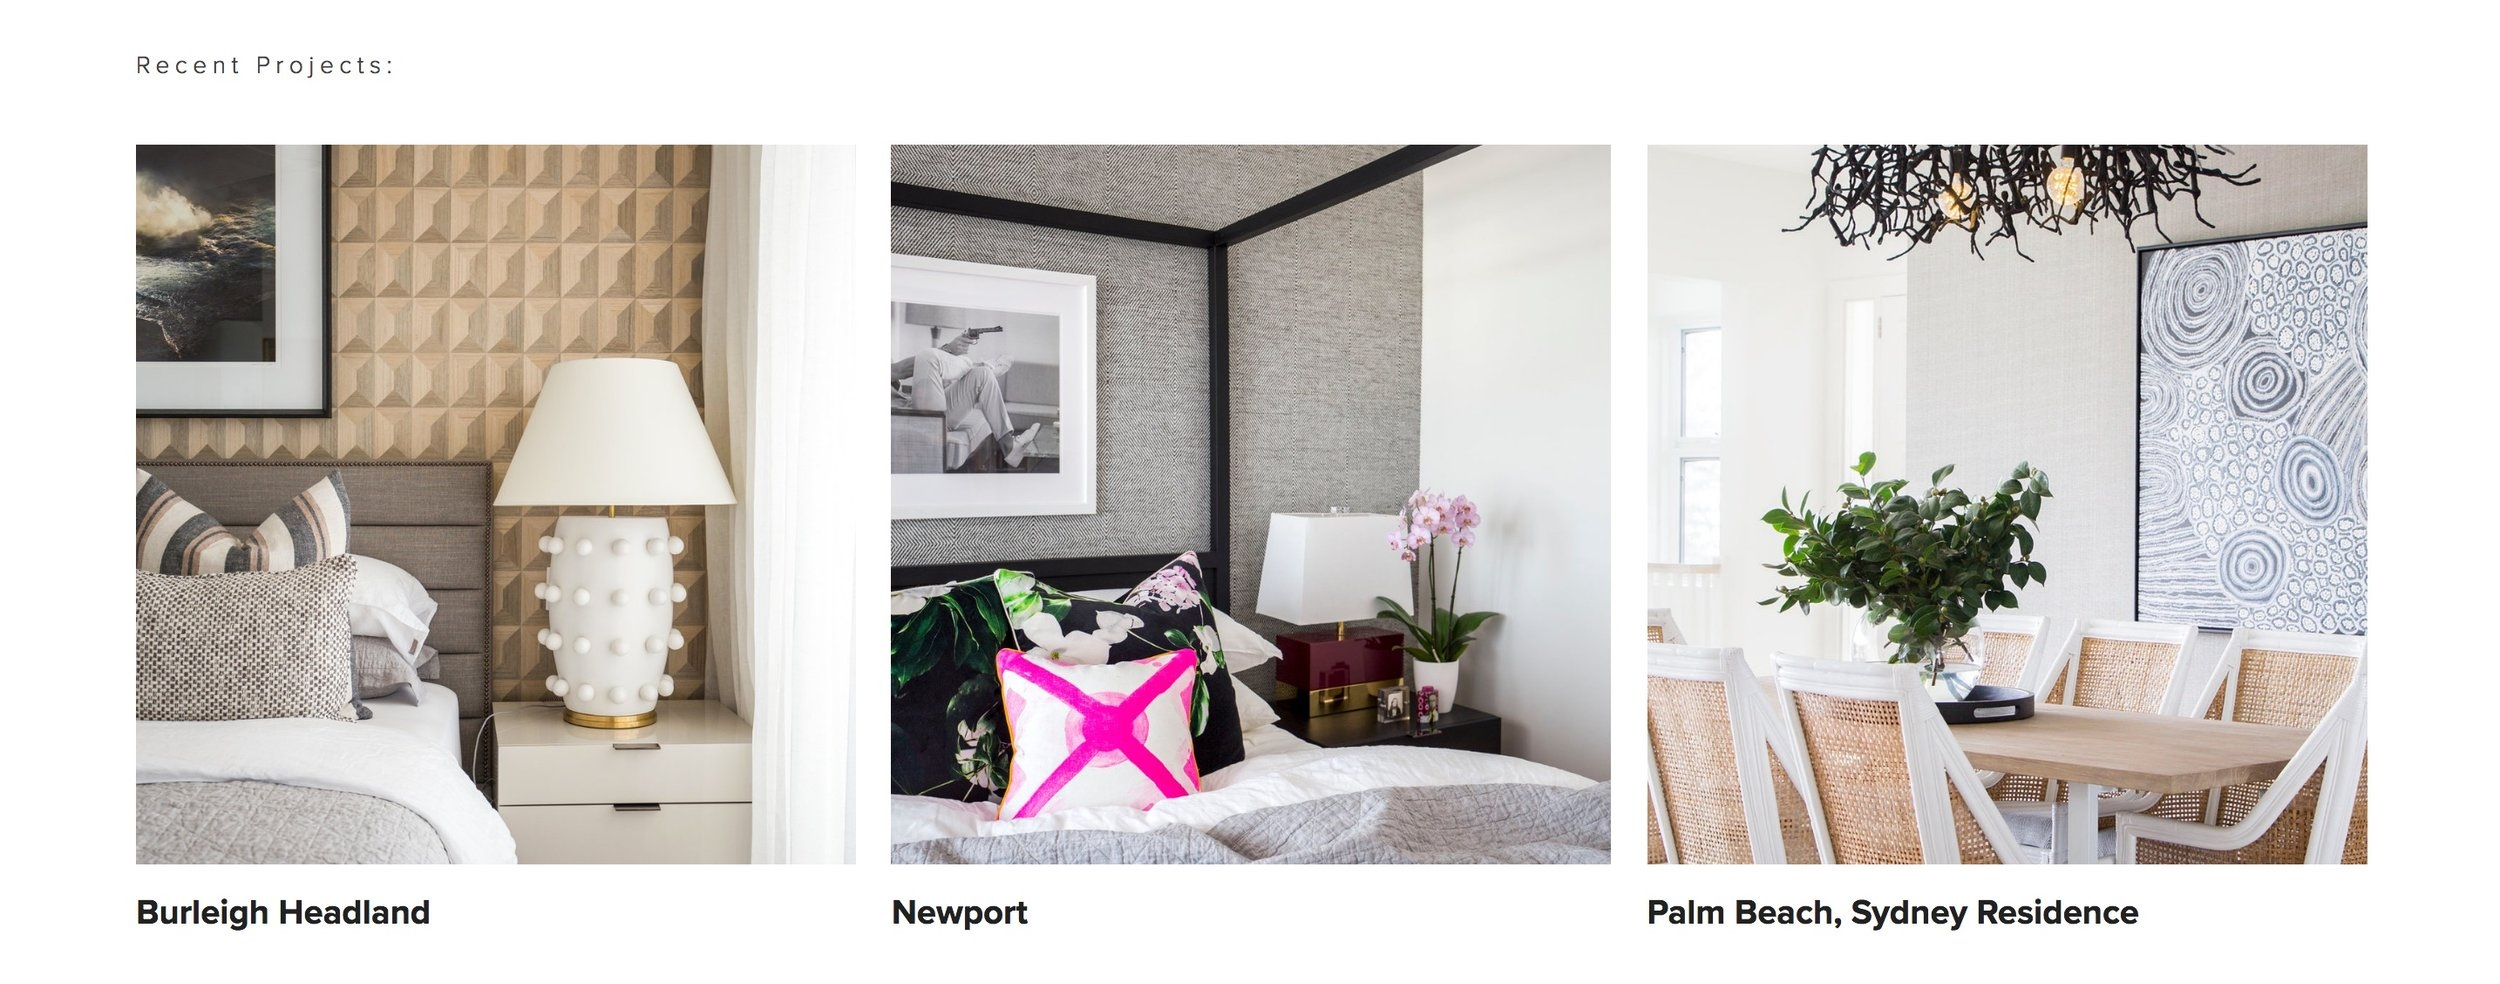 Design Scout Interiors - website - by Tanika Blair 3.jpg